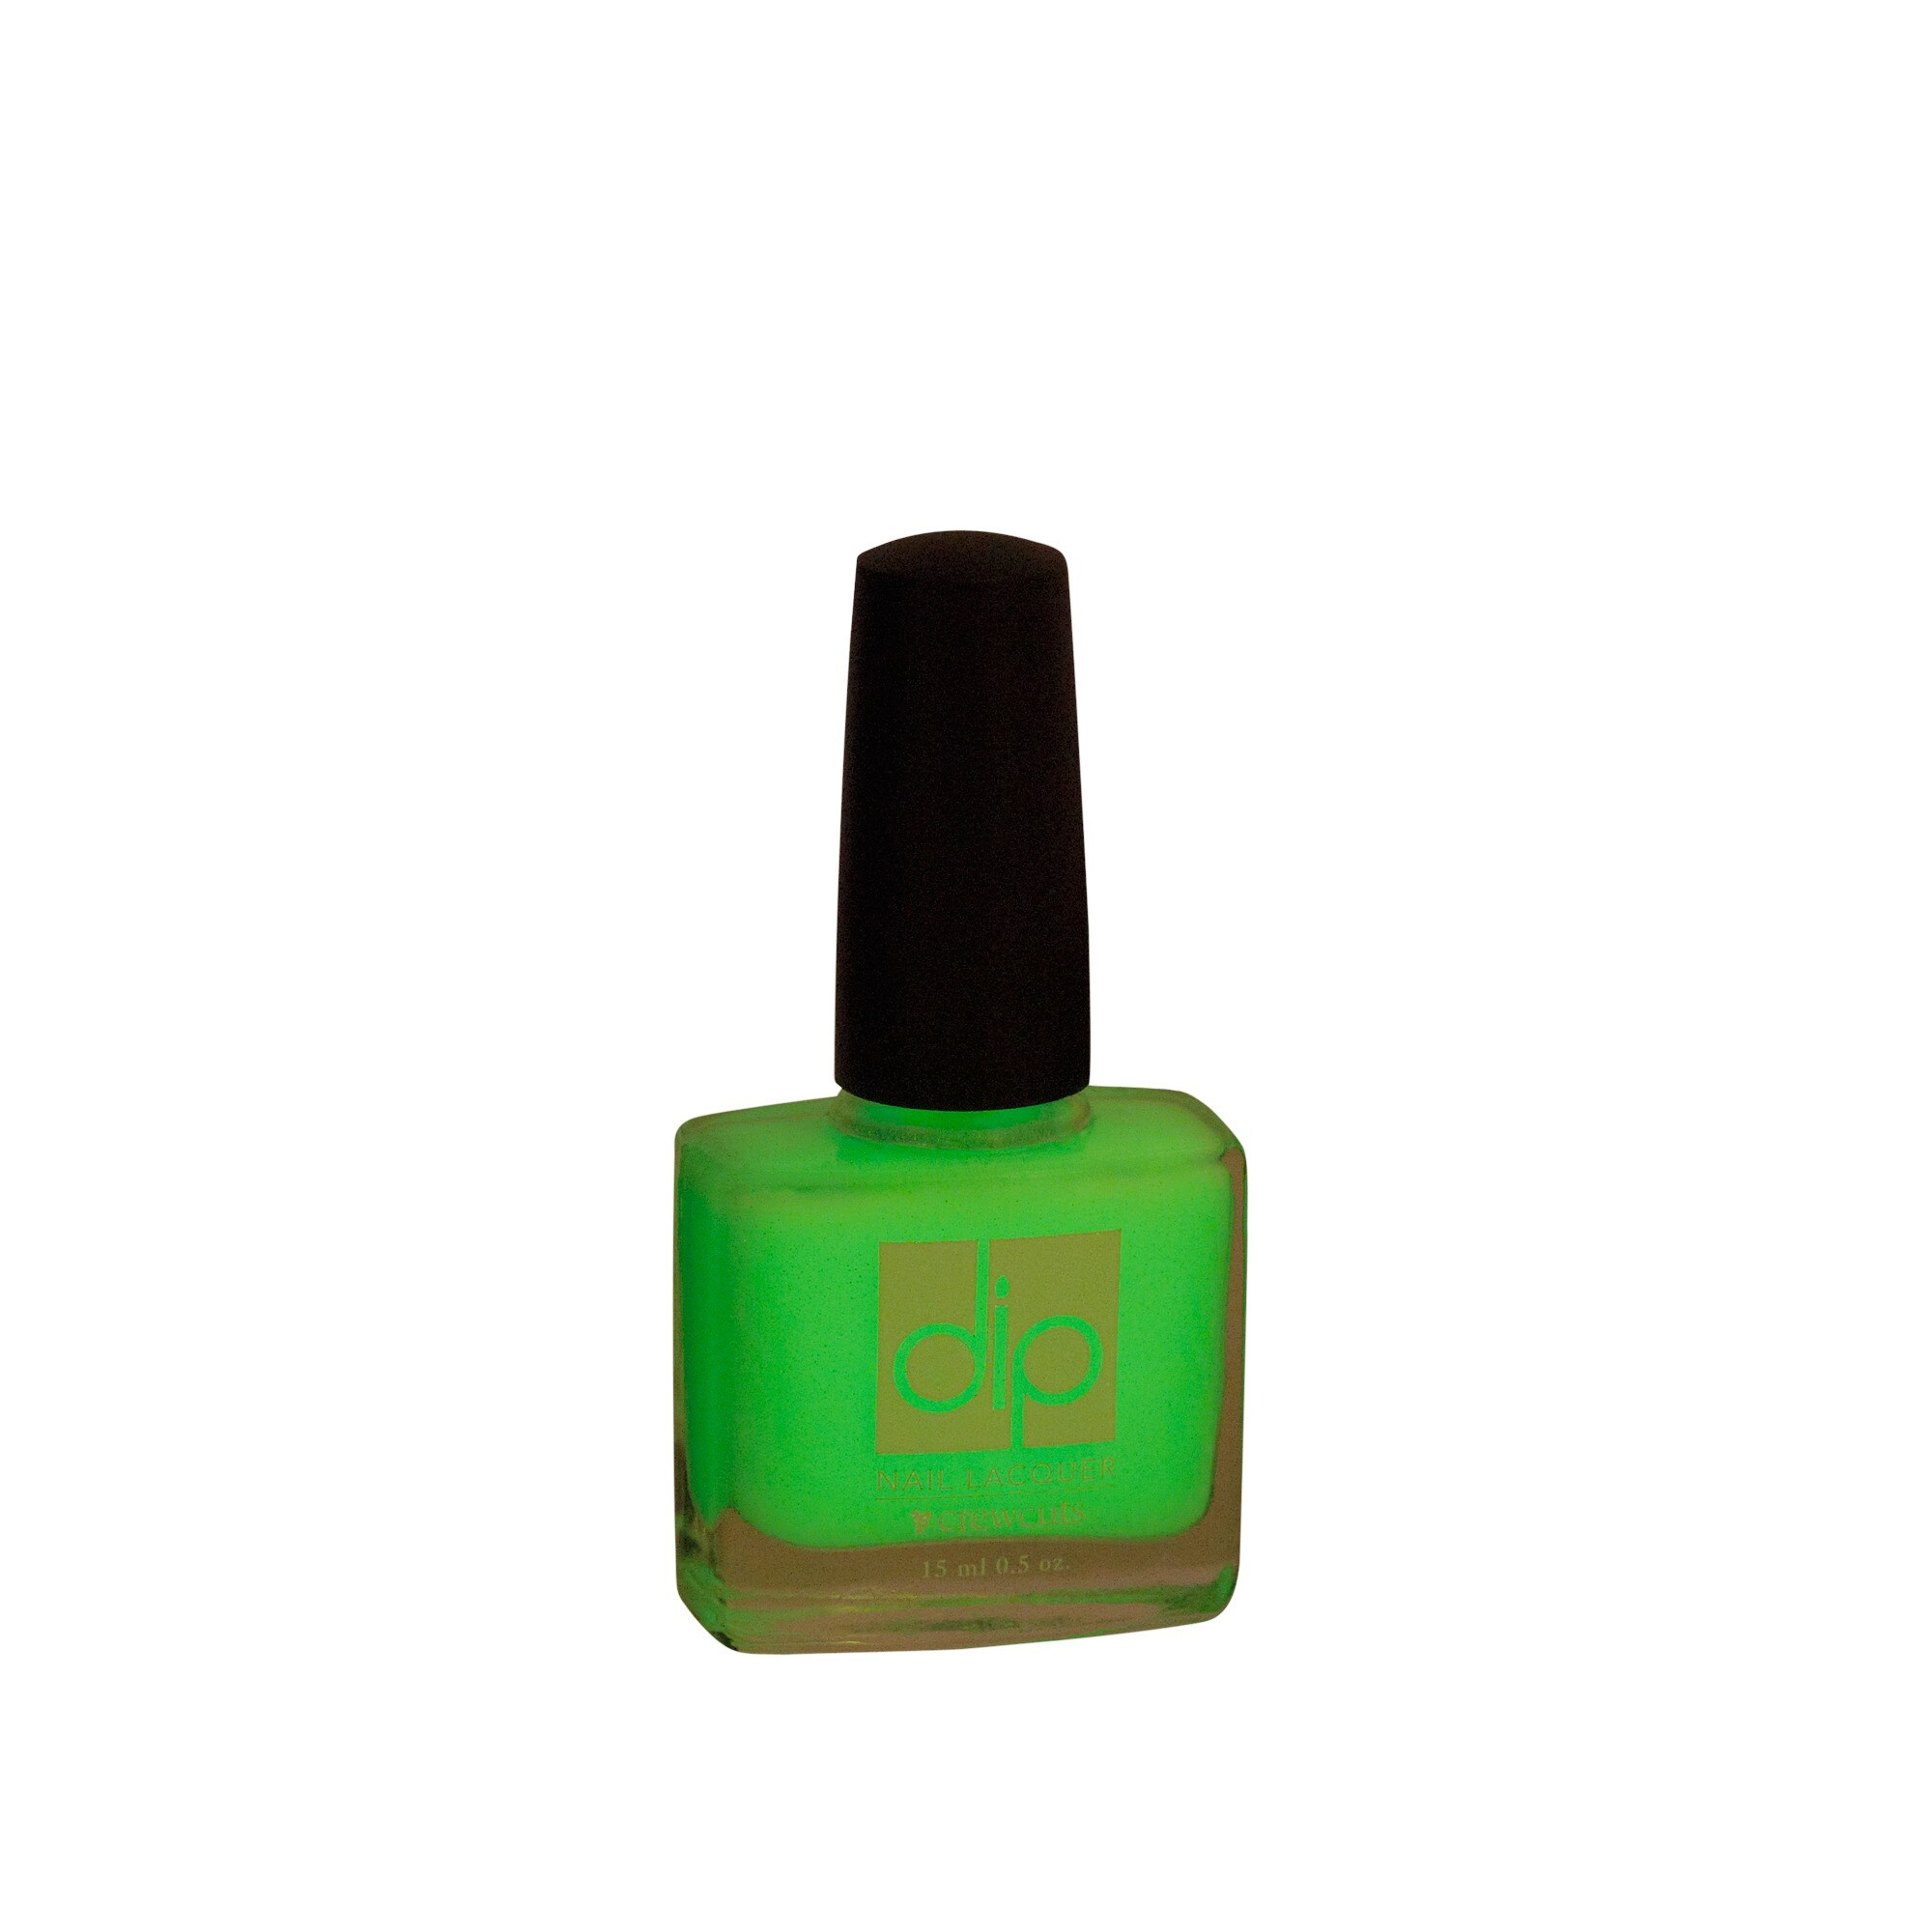 Dip™ nail lacquer for crewcuts glow-in-the-dark topcoat